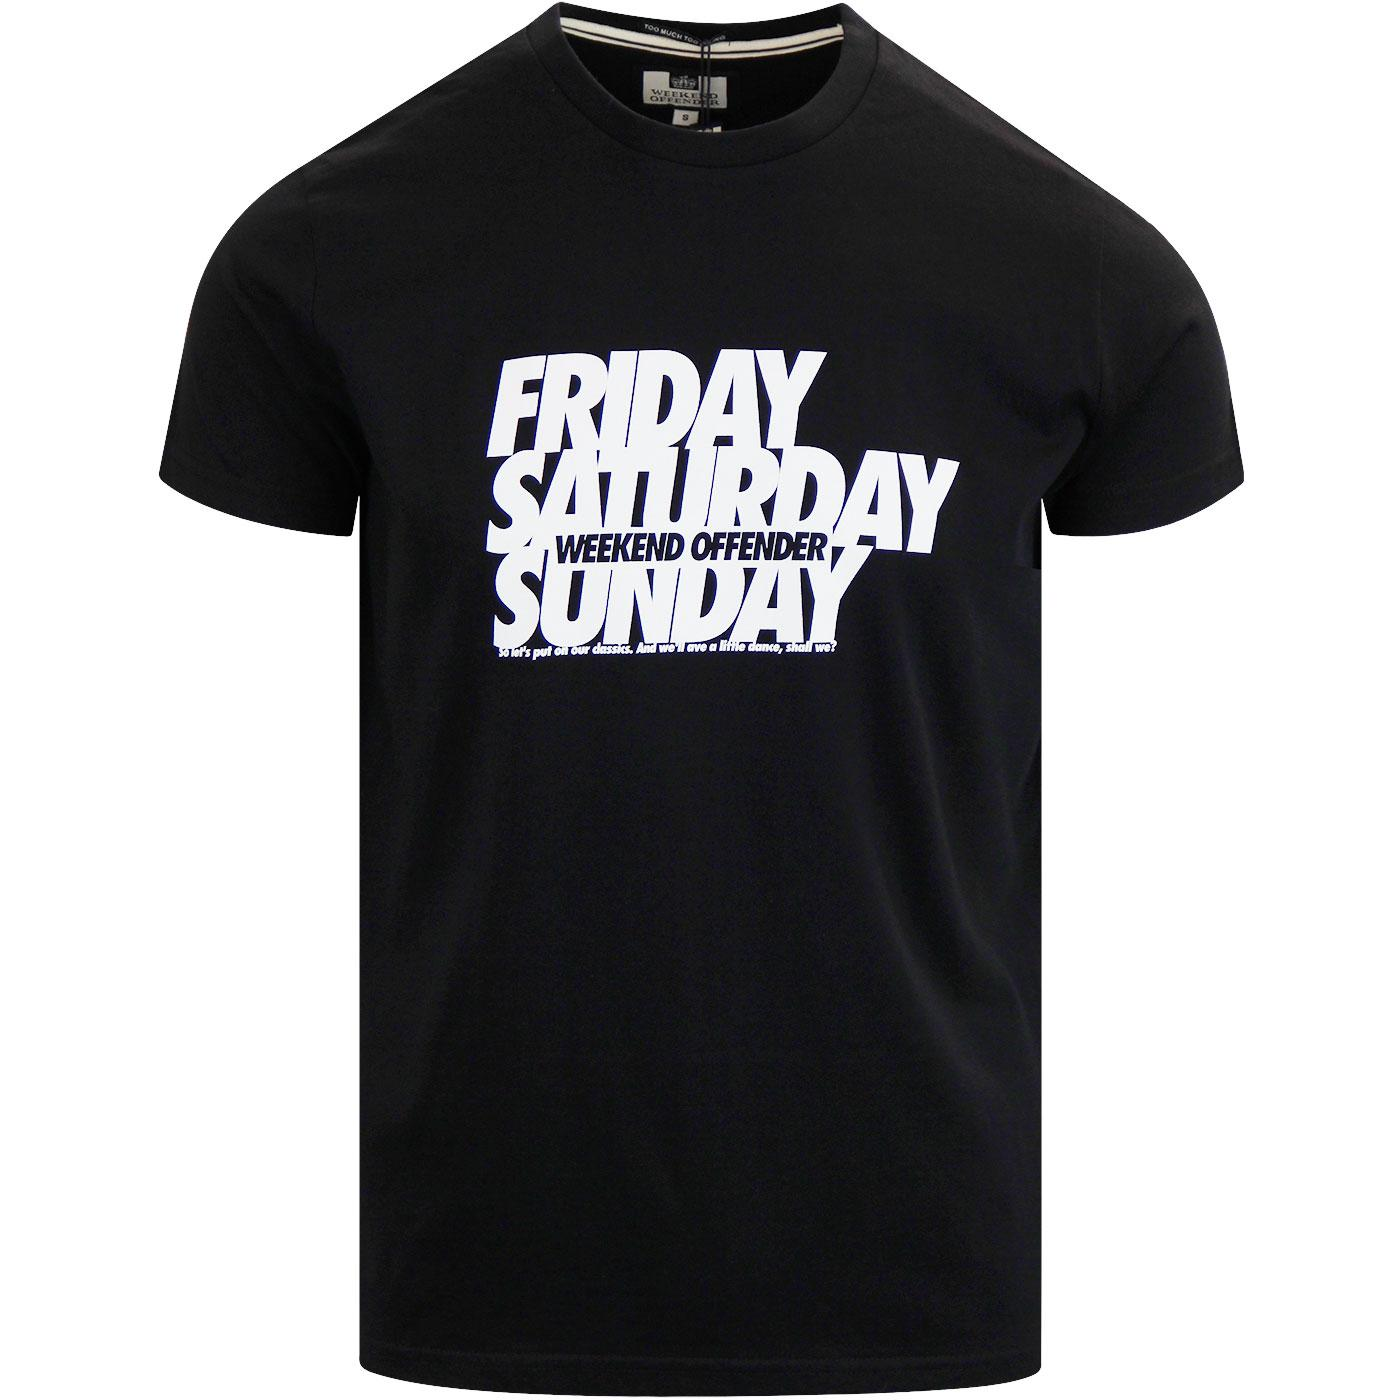 Friday Saturday Sunday WEEKEND OFFENDER Bubble Tee